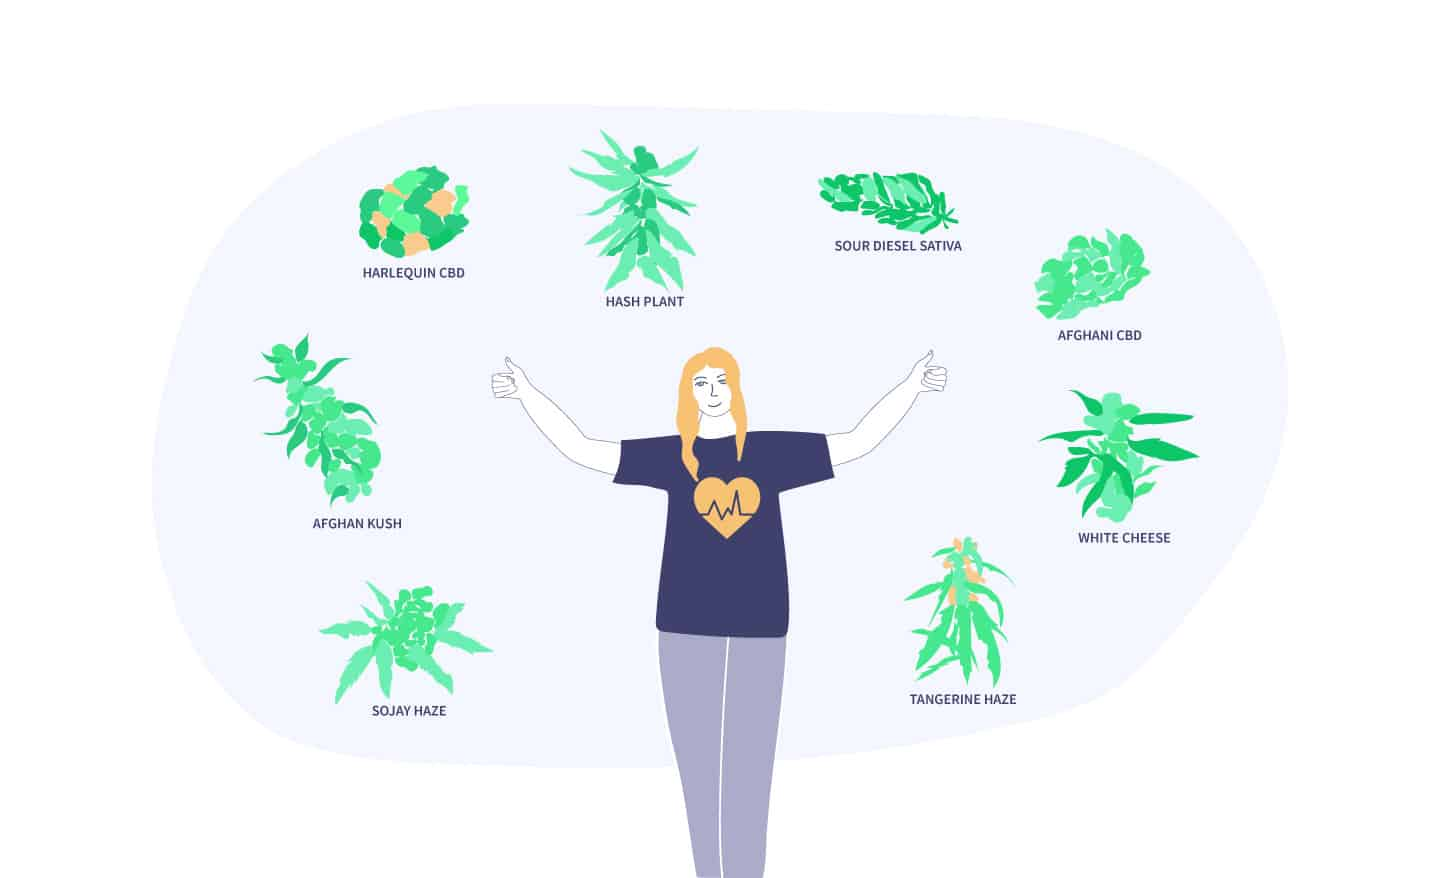 Best Cannabis Strains for Health Conditions